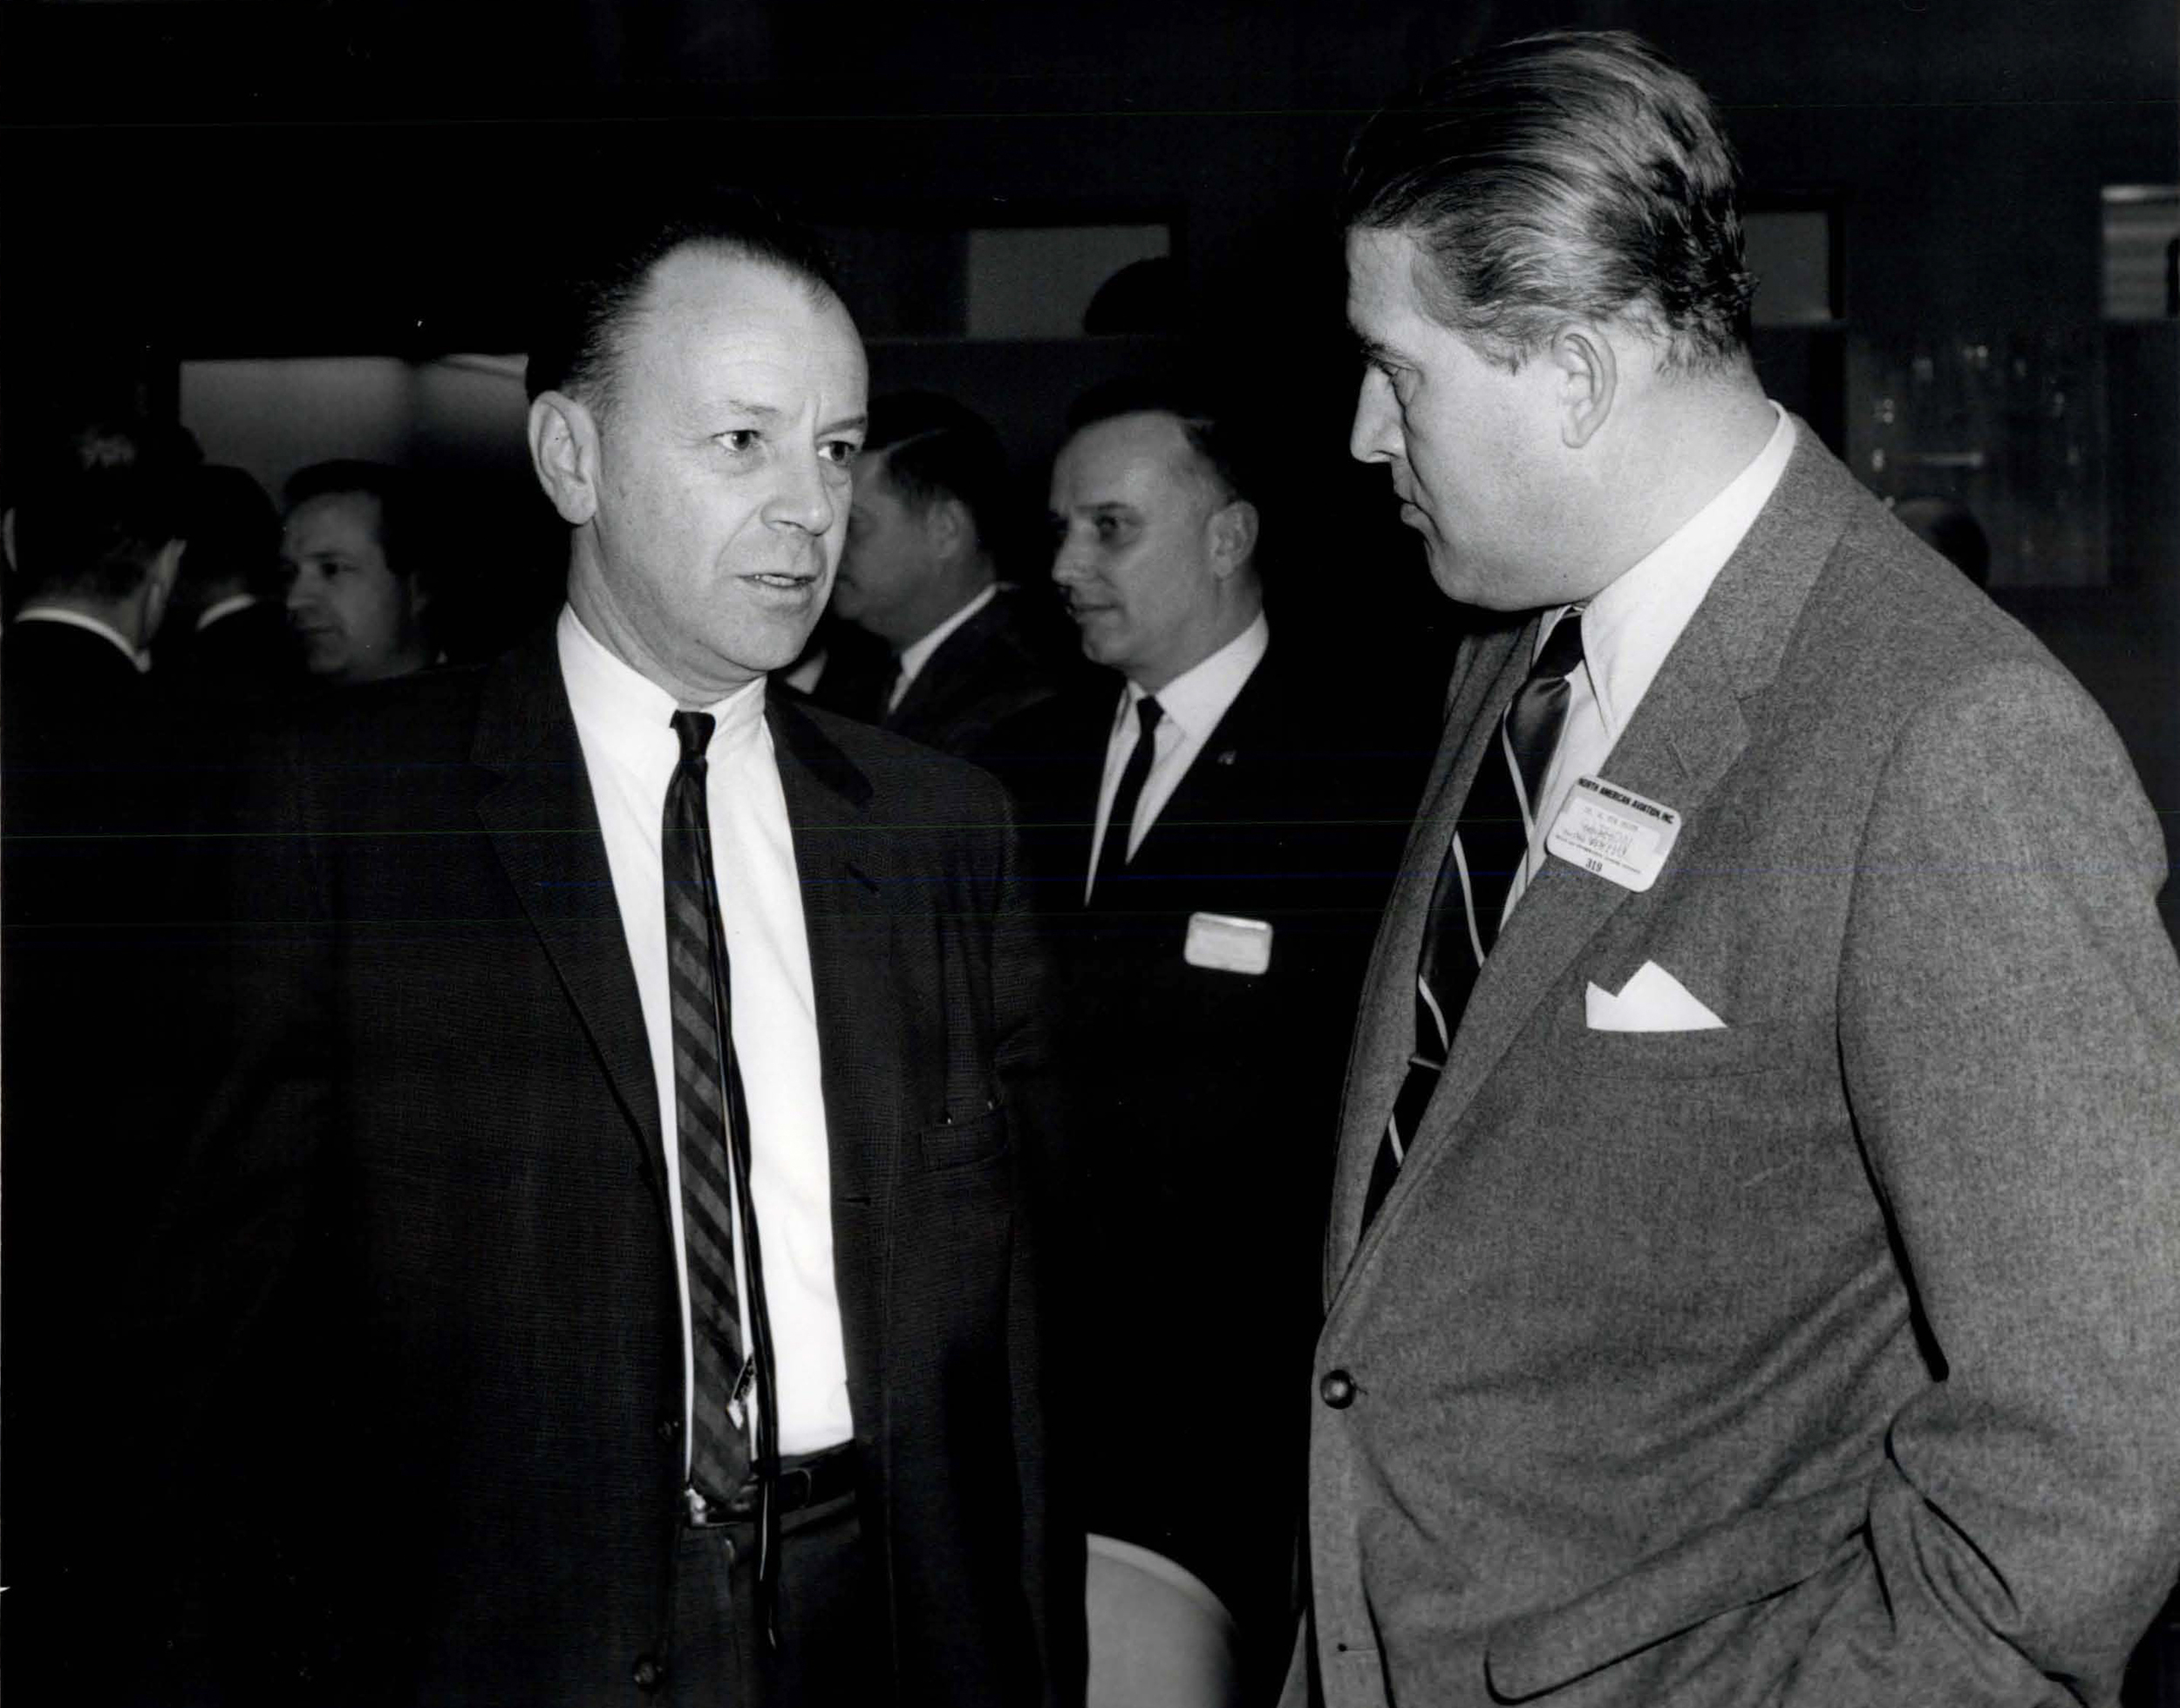 Dr. Harrison Storms and Dr. Wernher Von Braun